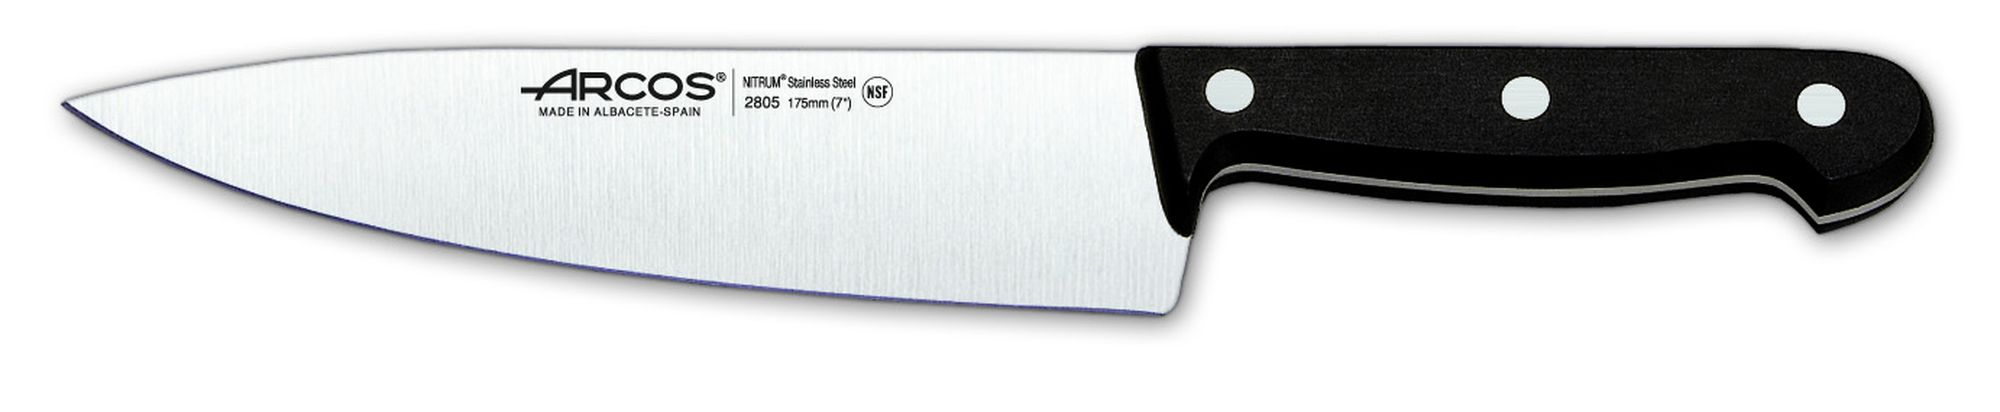 Chef's Knife Arcos ref.: 280504